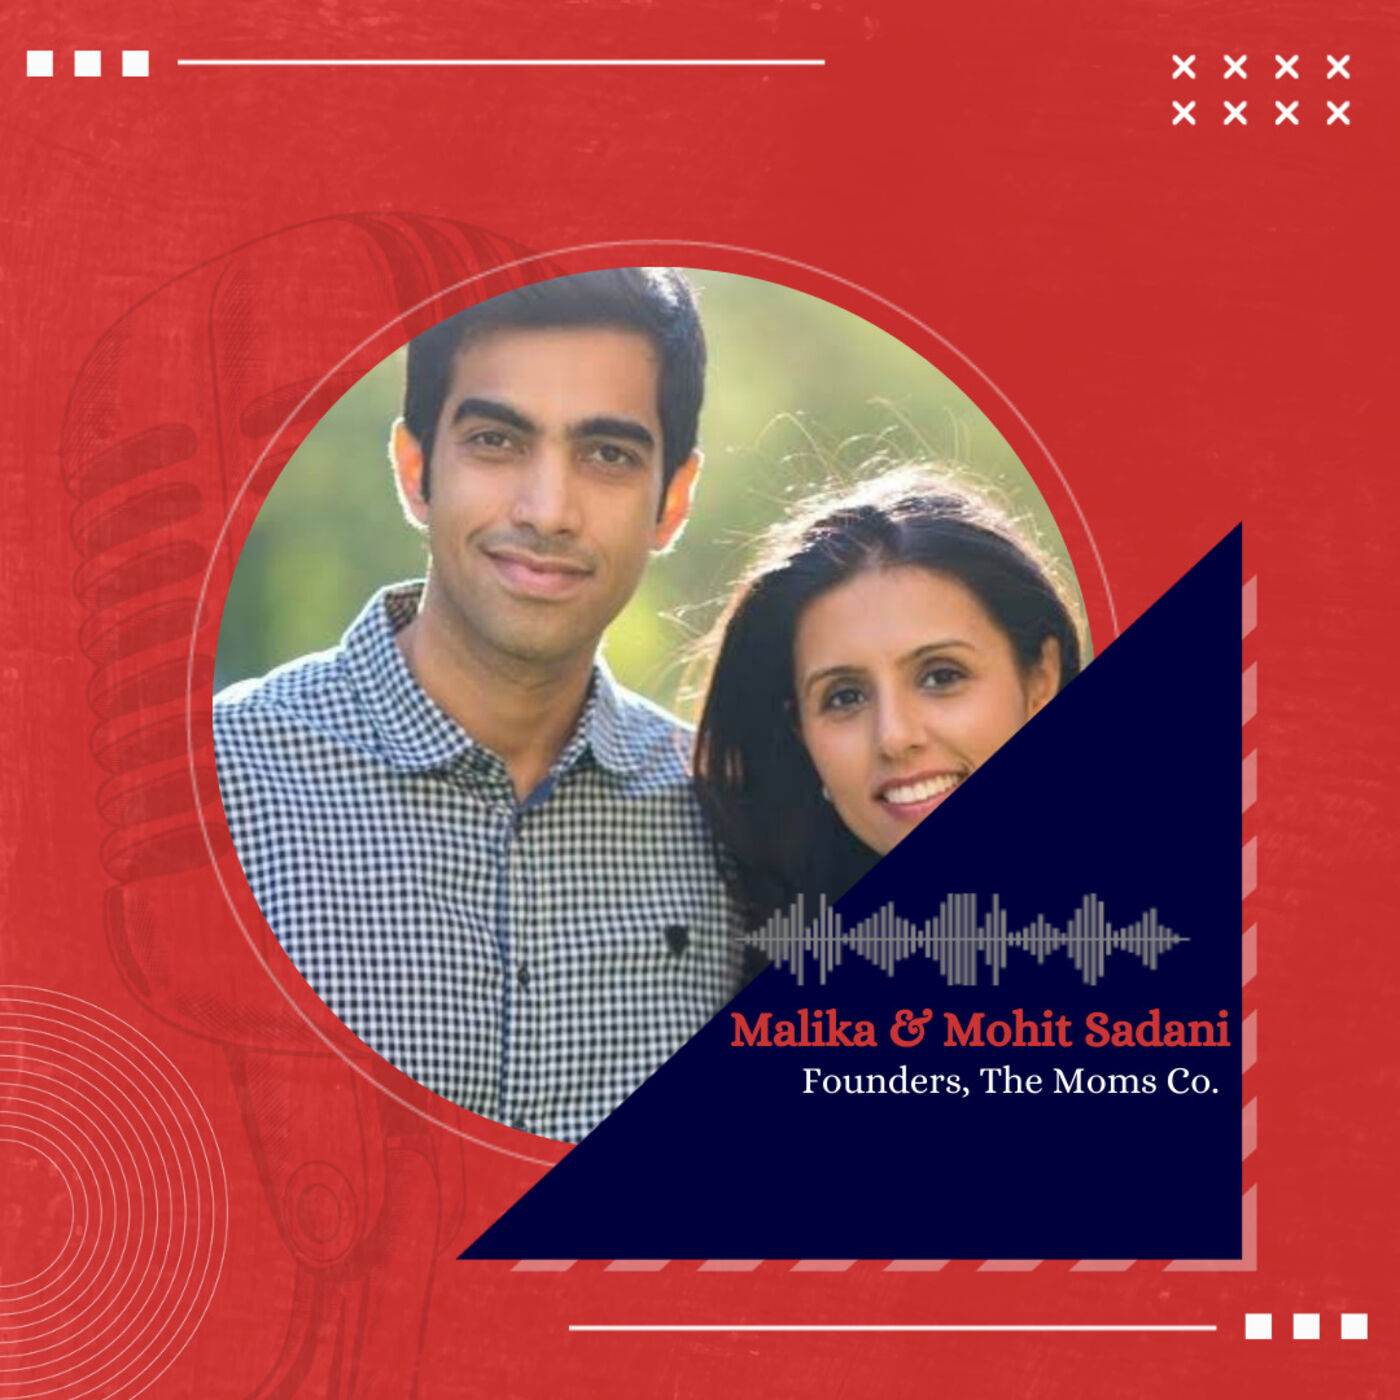 The journey of a 100 cr D2C brand in India with The Moms Co. Founders, Mohit and Malika Sadani